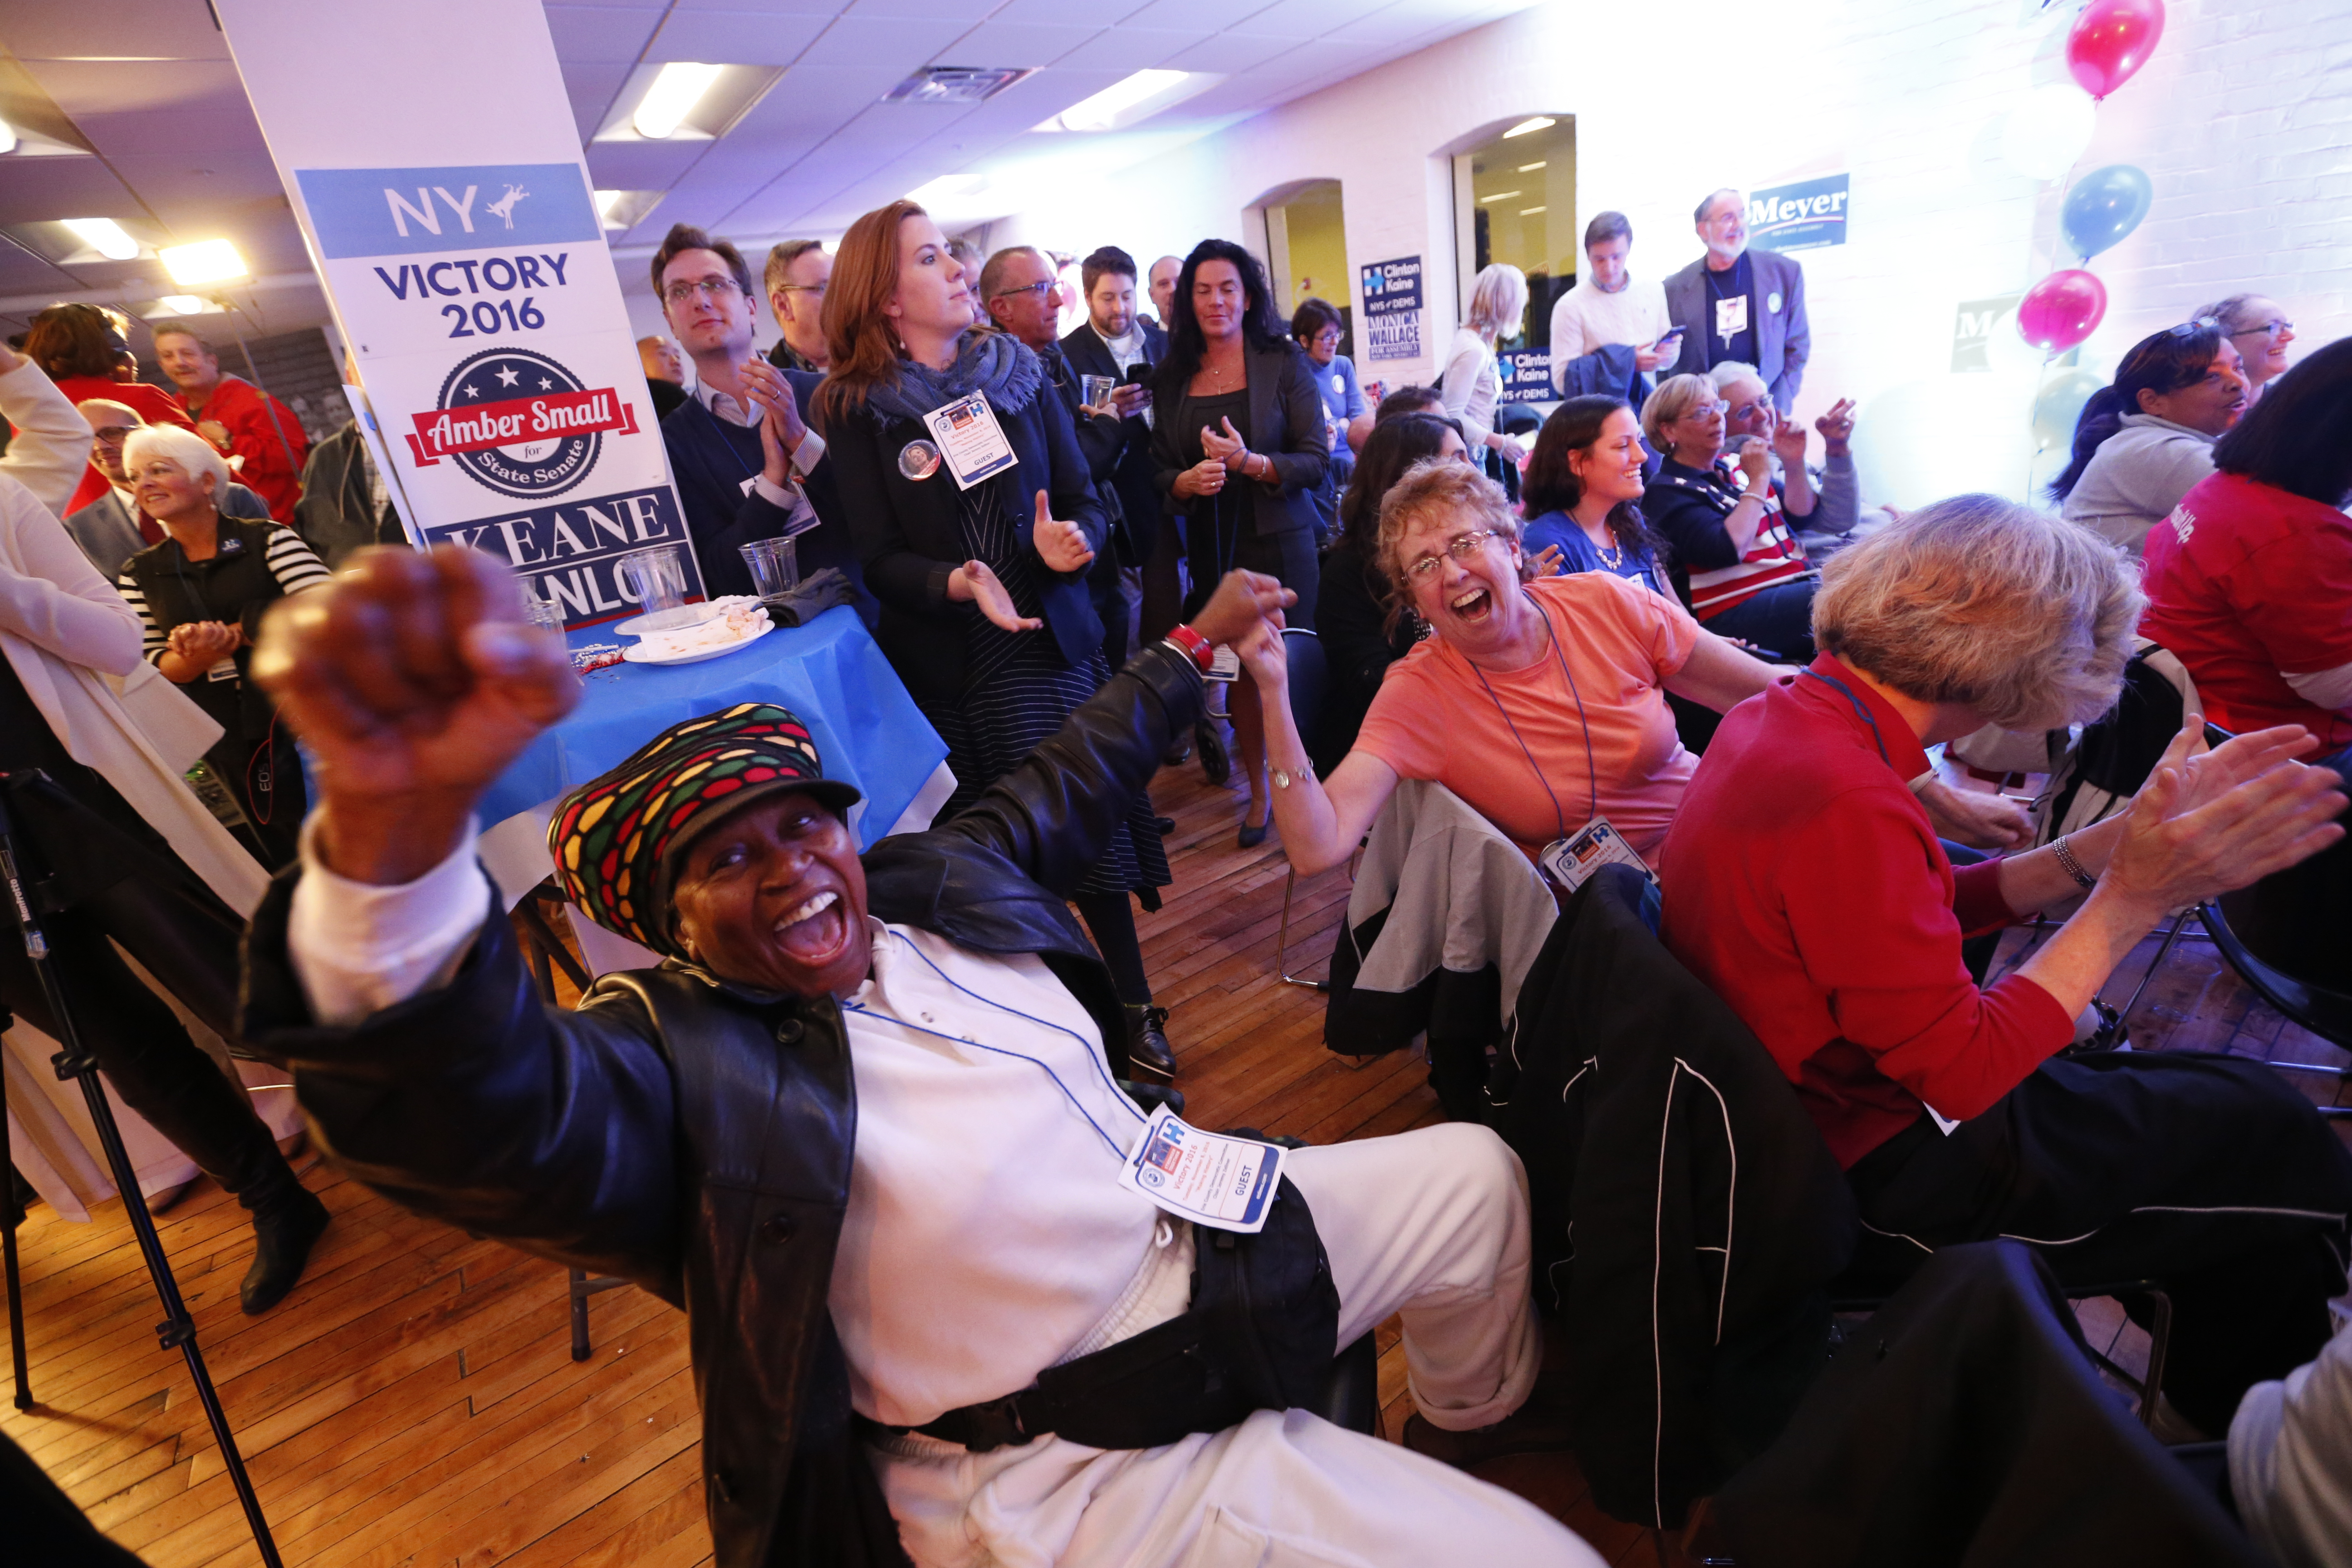 Louise Gullate, of Niagara Falls, celebrates Hillary Clinton winning California during the Erie County Democratic Party election night event at Larkinville on Tuesday, Nov. 8, 2016.  (Derek Gee/Buffalo News)